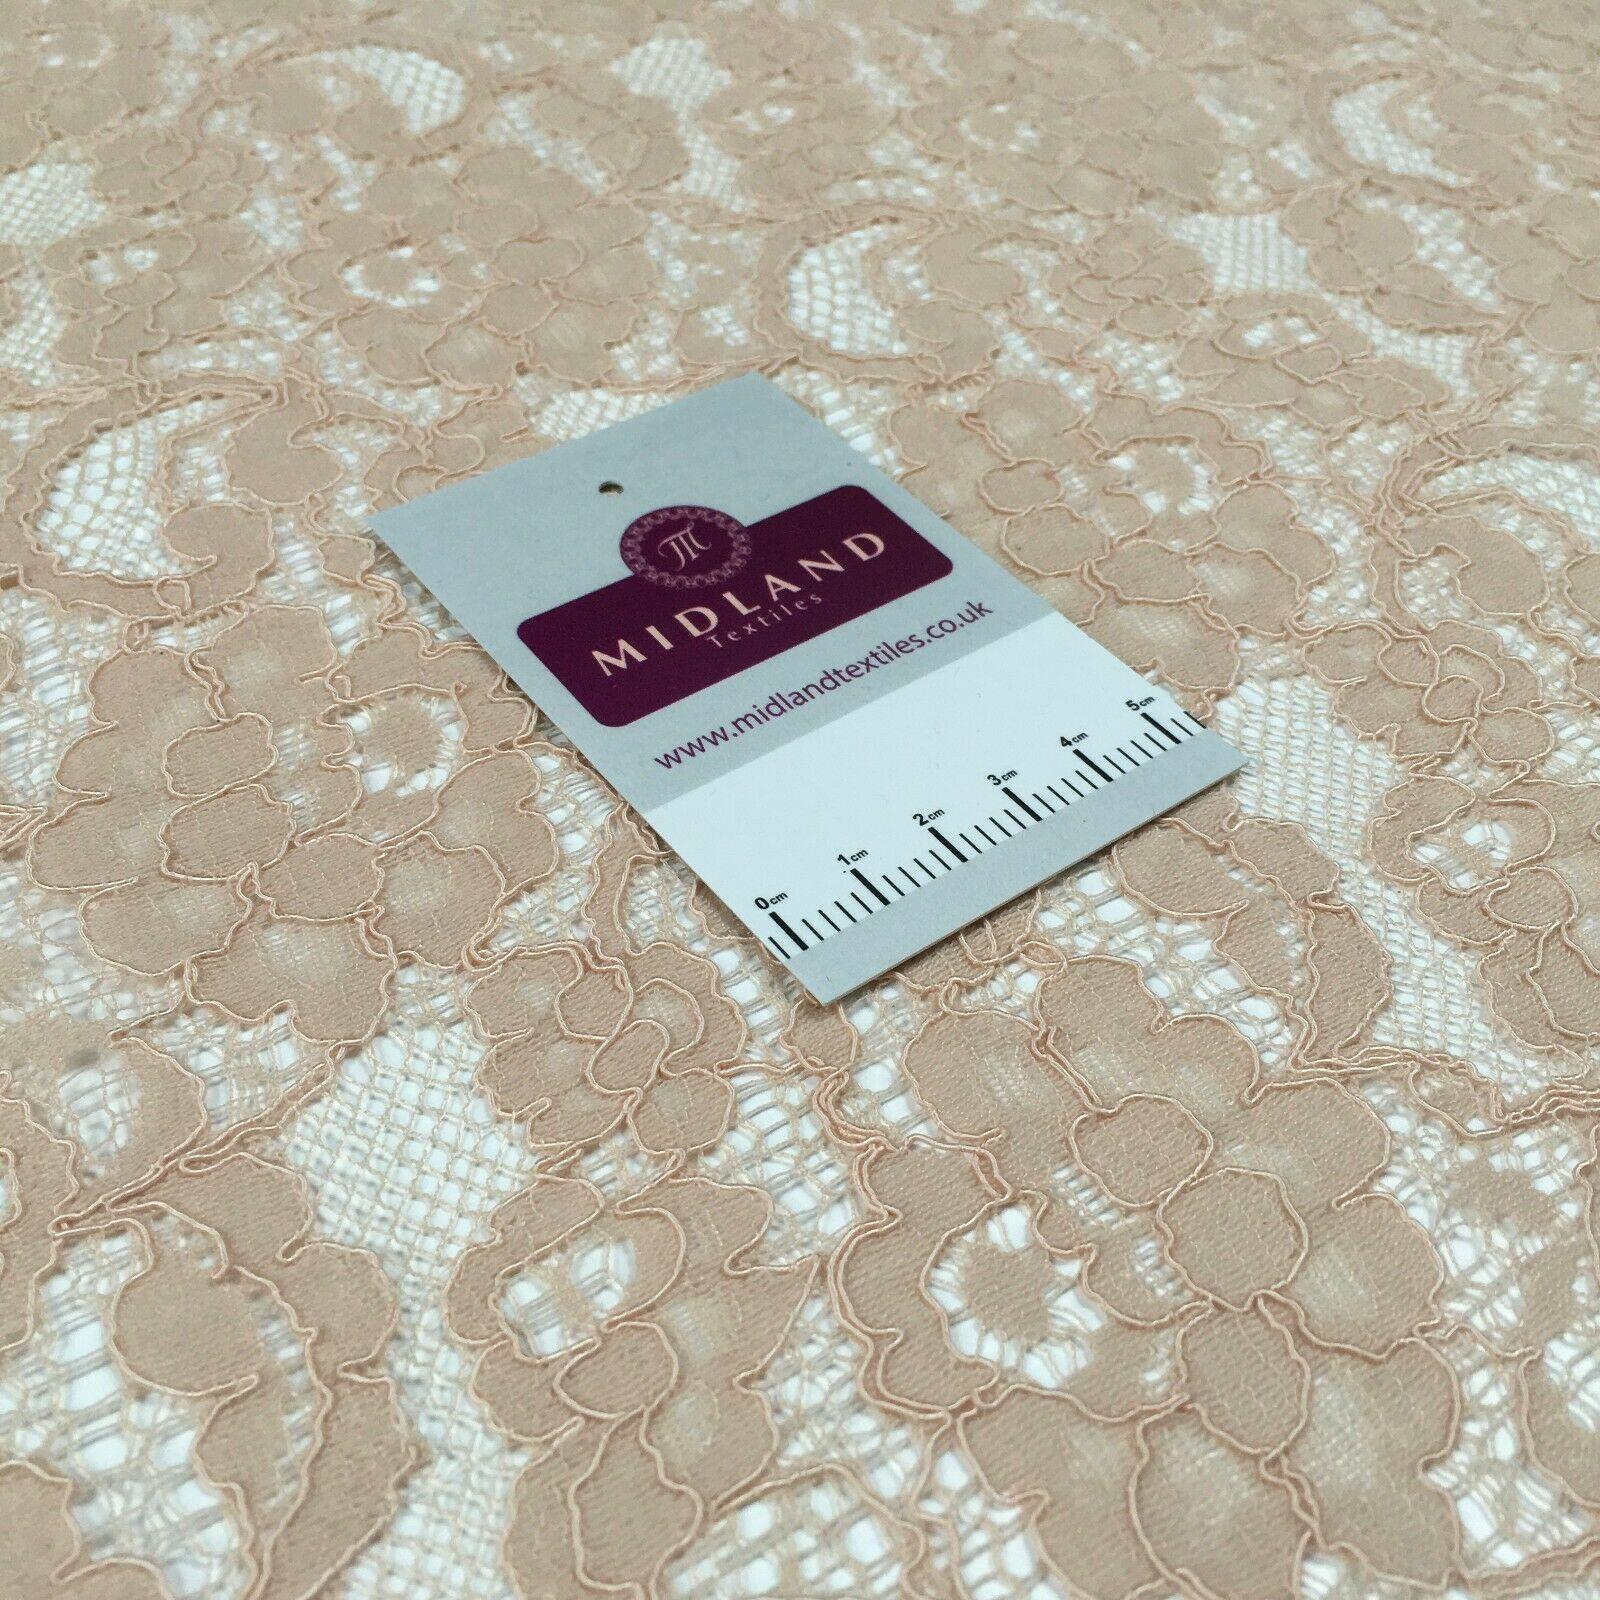 Skin Lace Corded floral dress Fabric 150 cm M186-53 Mtex